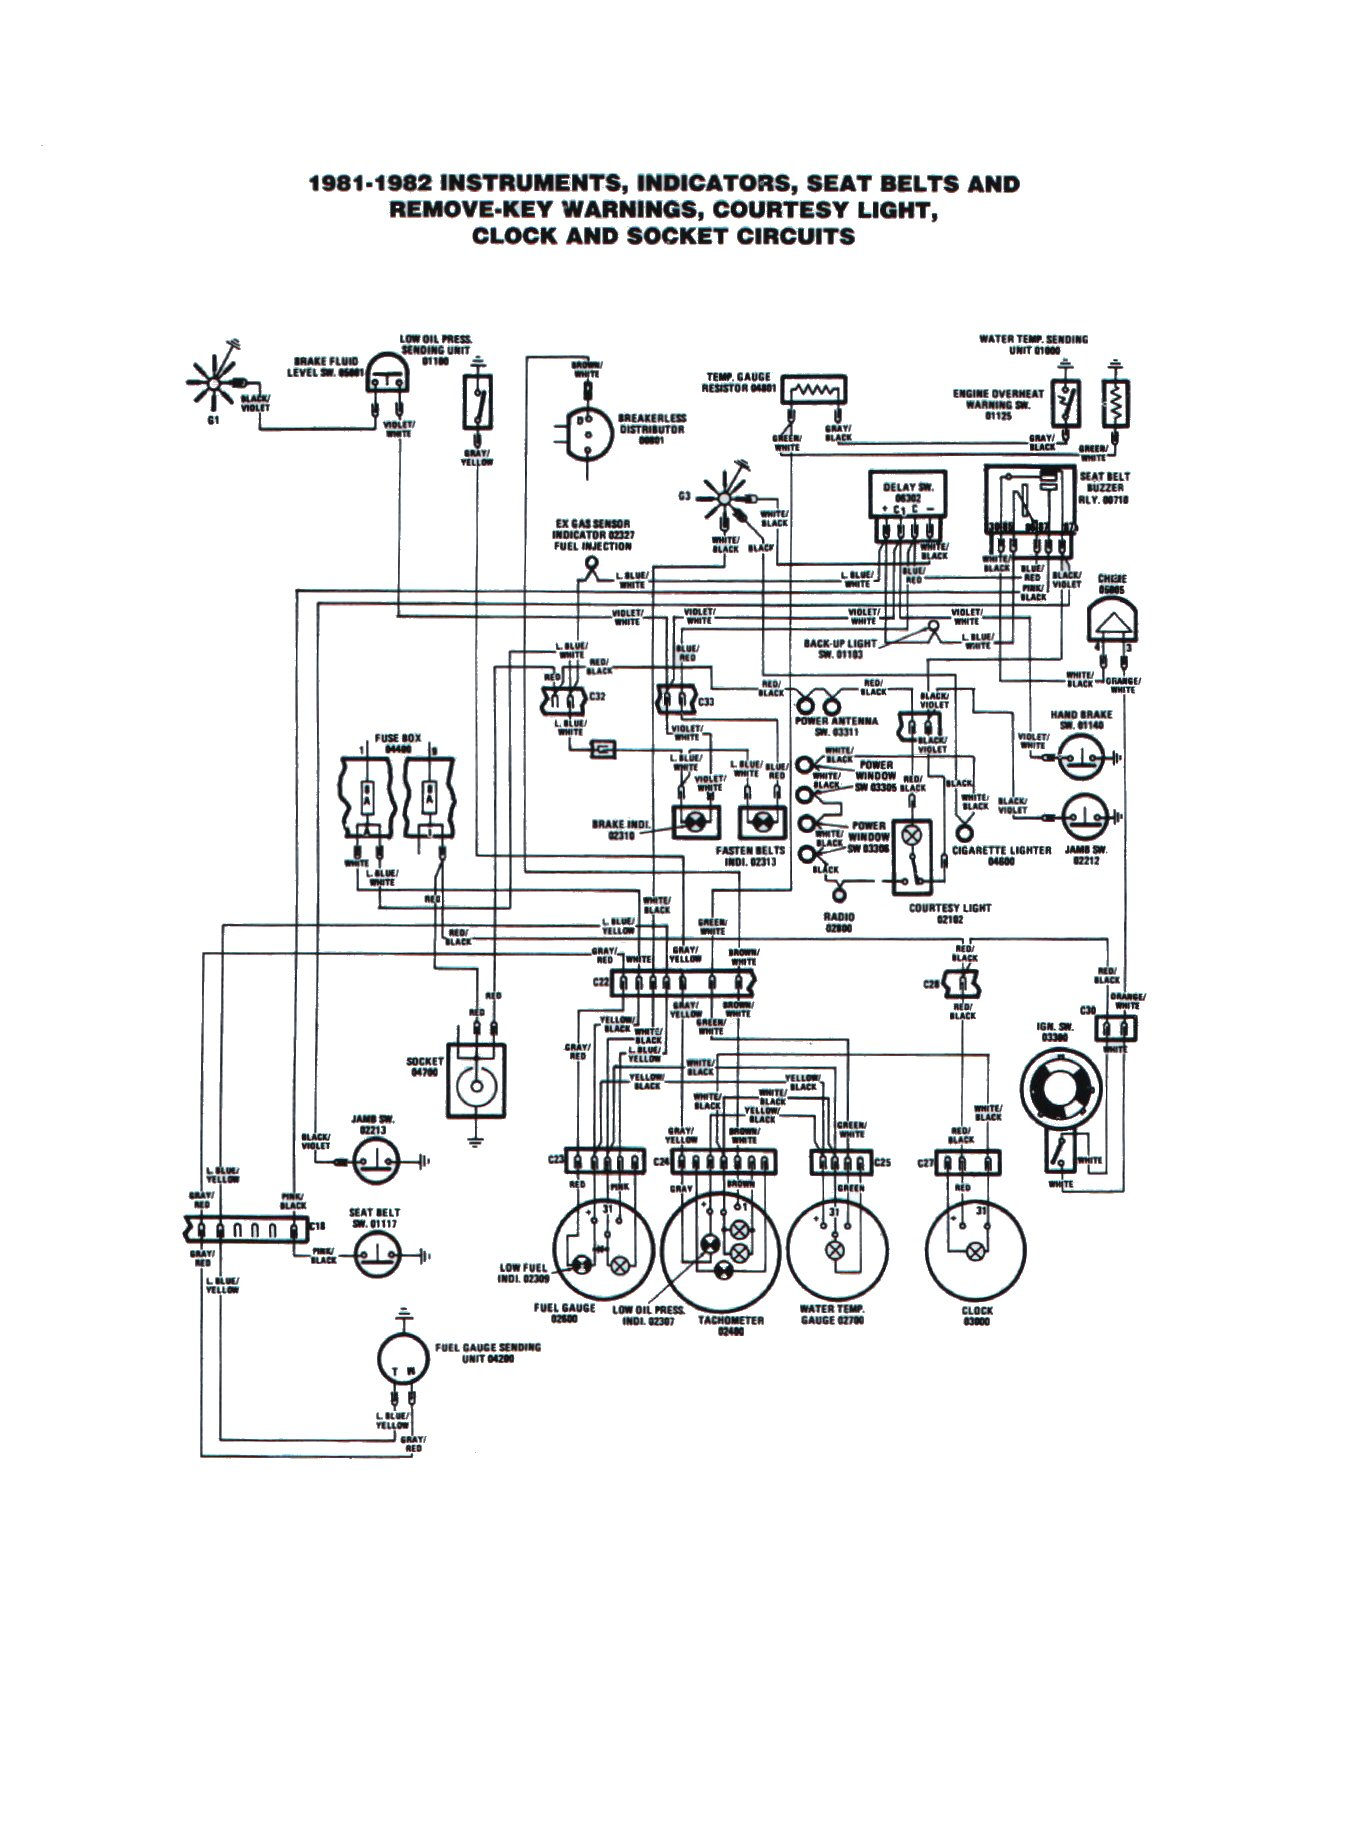 1979 fiat spider ignition wiring diagrams